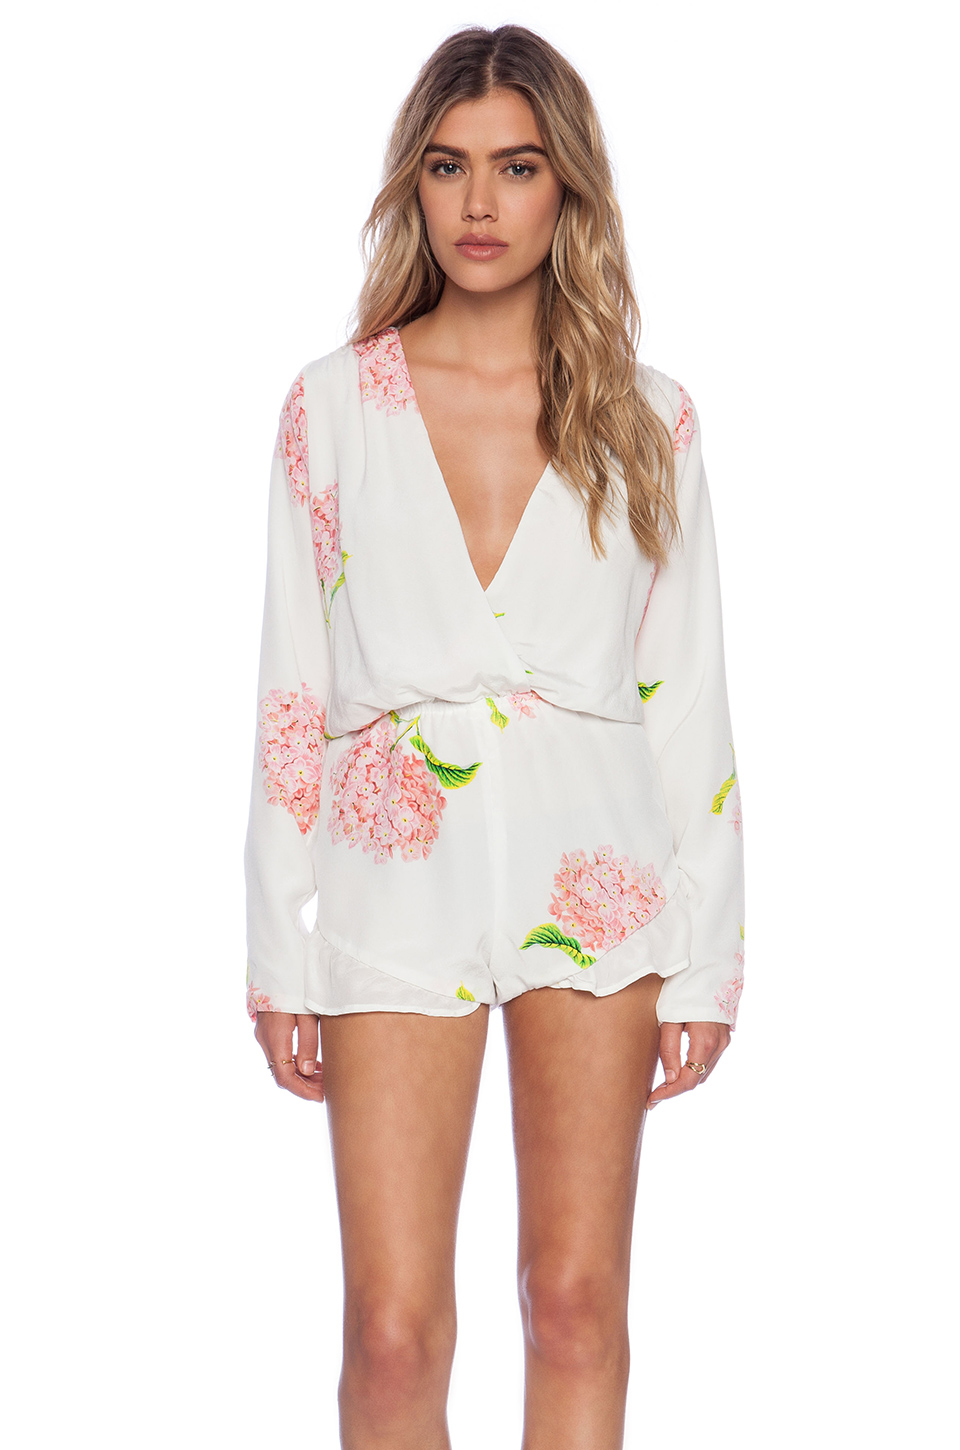 Stone_cold_fox love jumper in white bloom from revolveclothing.com